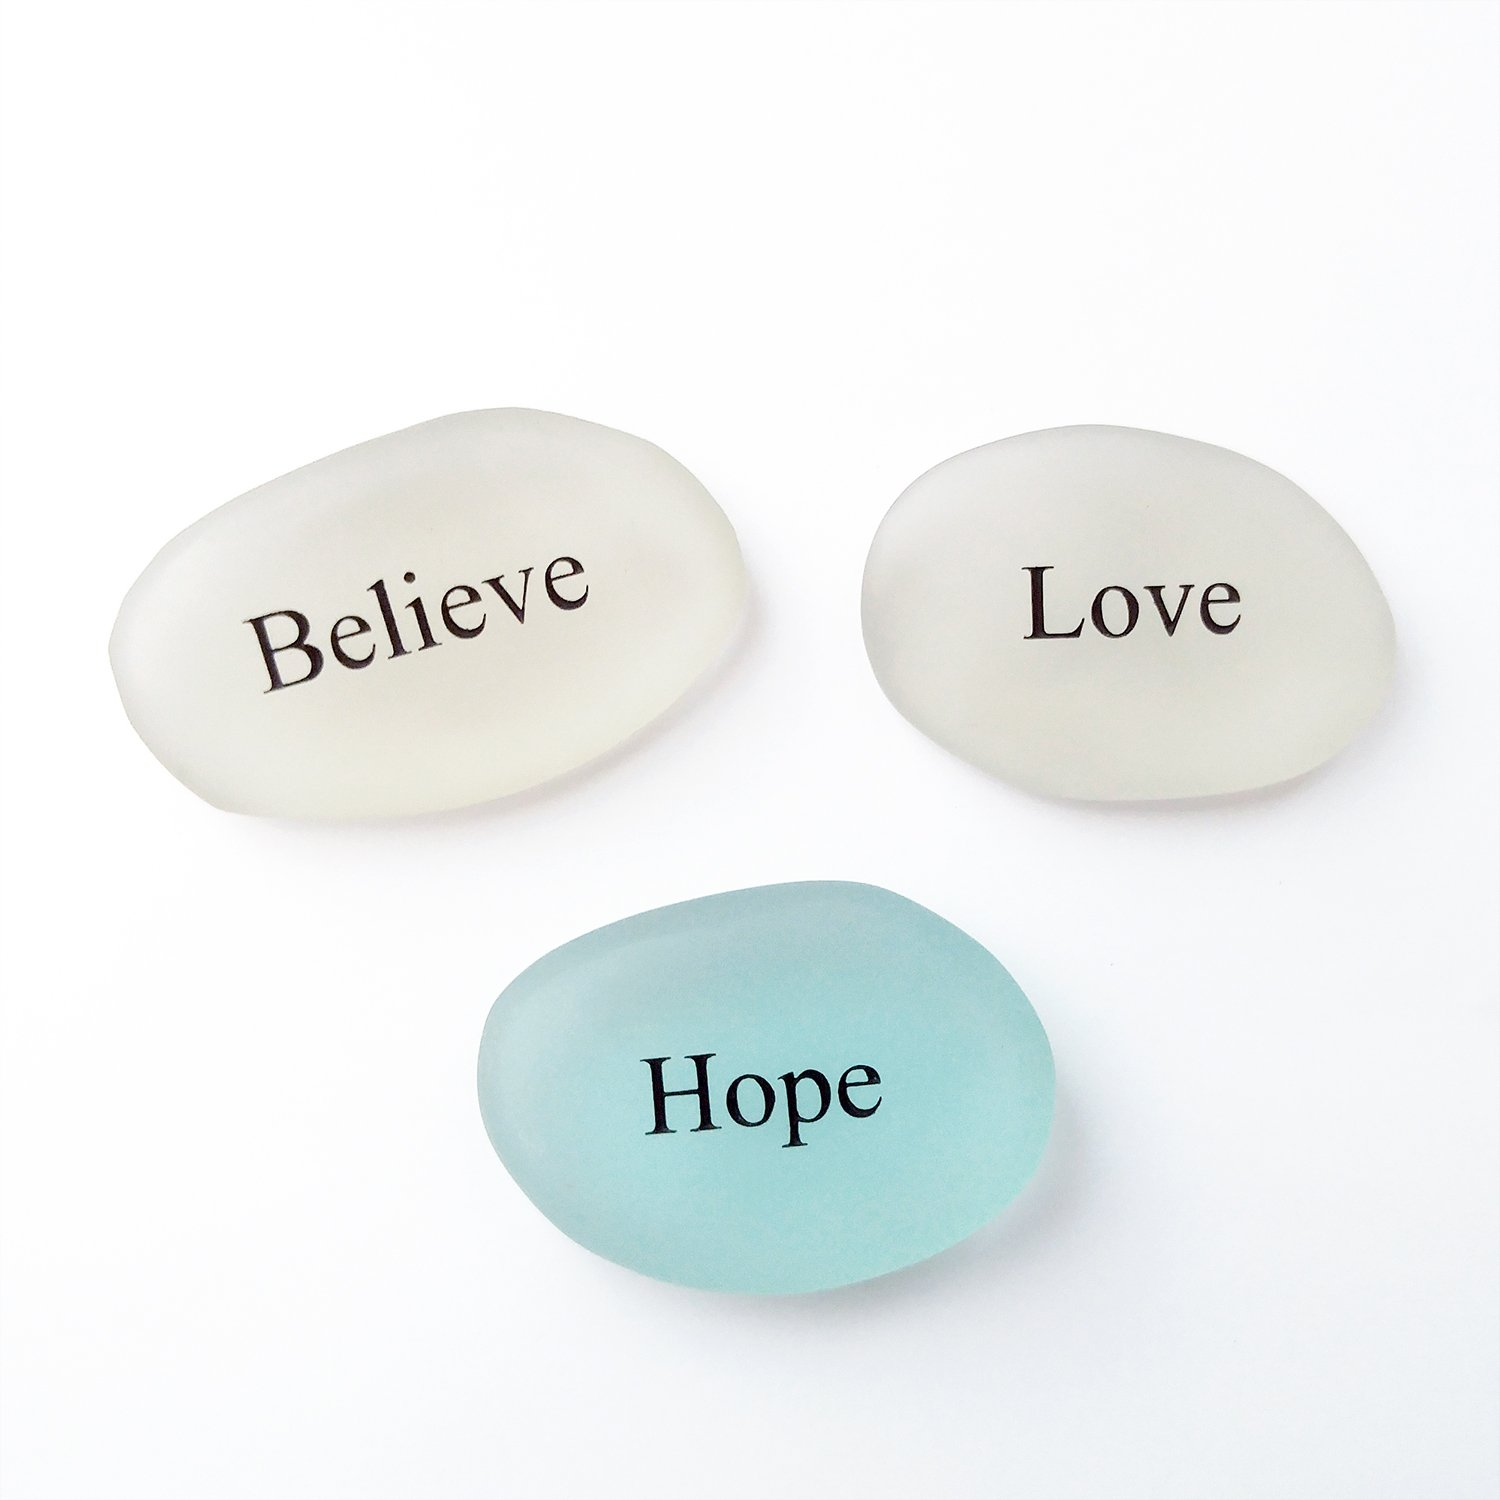 Believe, Hope, Love Sea glass Engraved Stones Motivational Inspirational Words, Perfect Gorgeous Unique Gift Ideas for Any Occasion Sets, Home Garden Decor (Believe, Hope, Love)